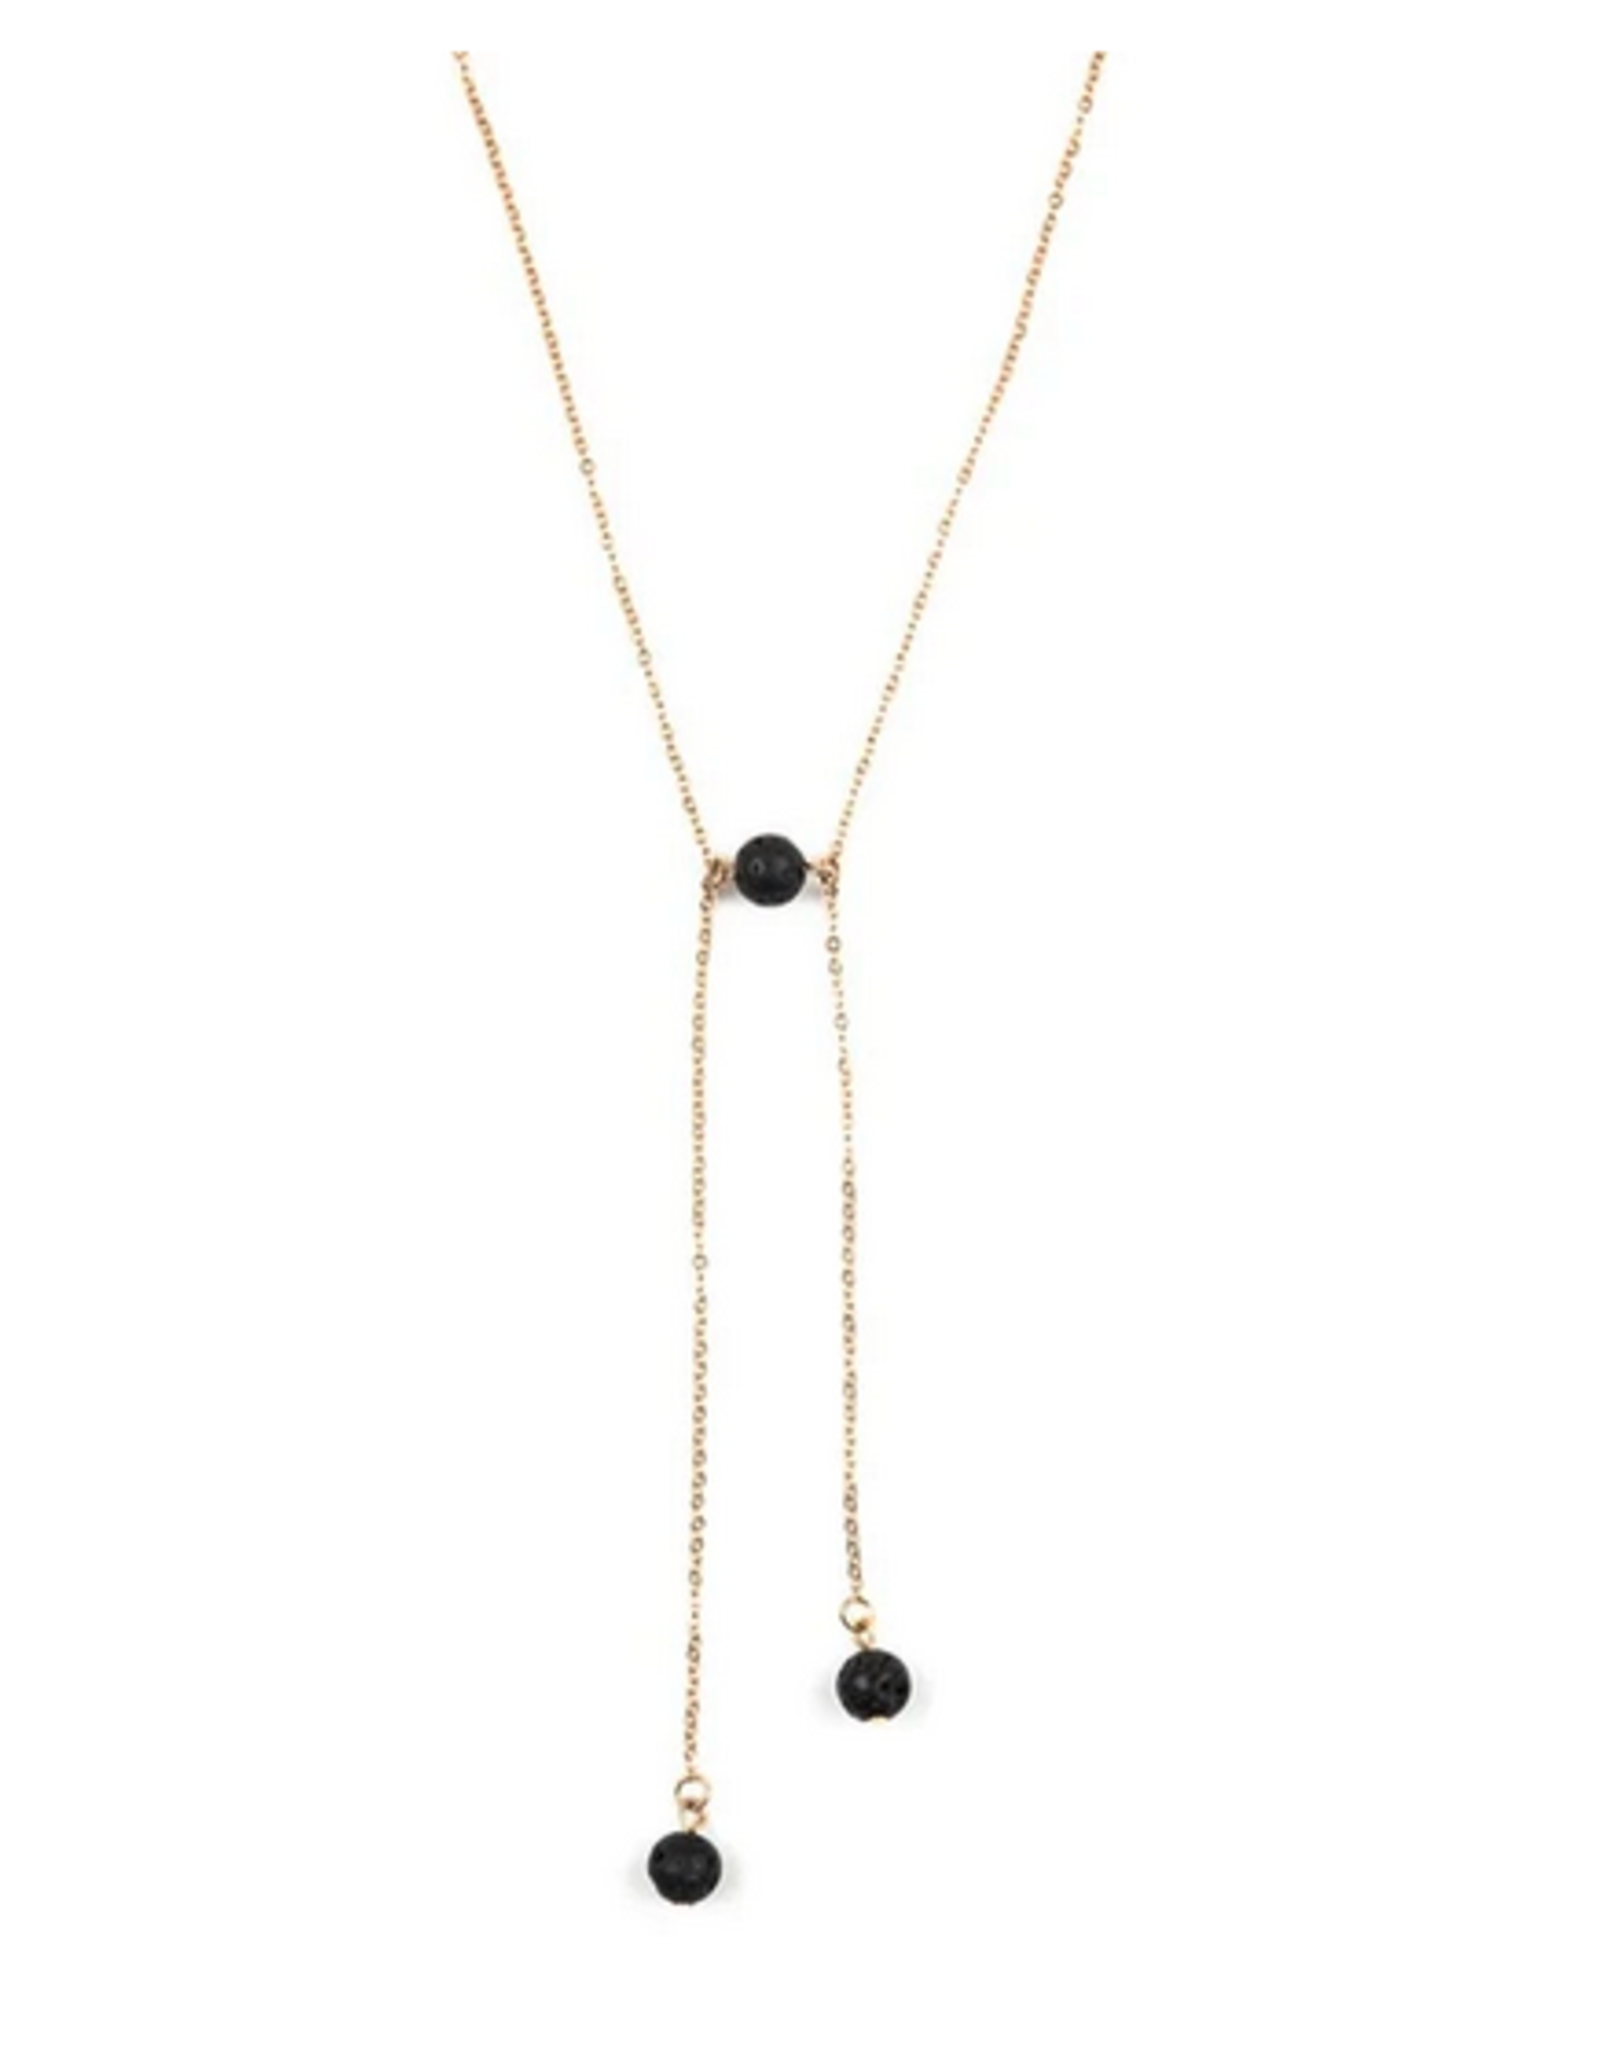 Black Lava Edgy Gold Coloured Chain Necklace